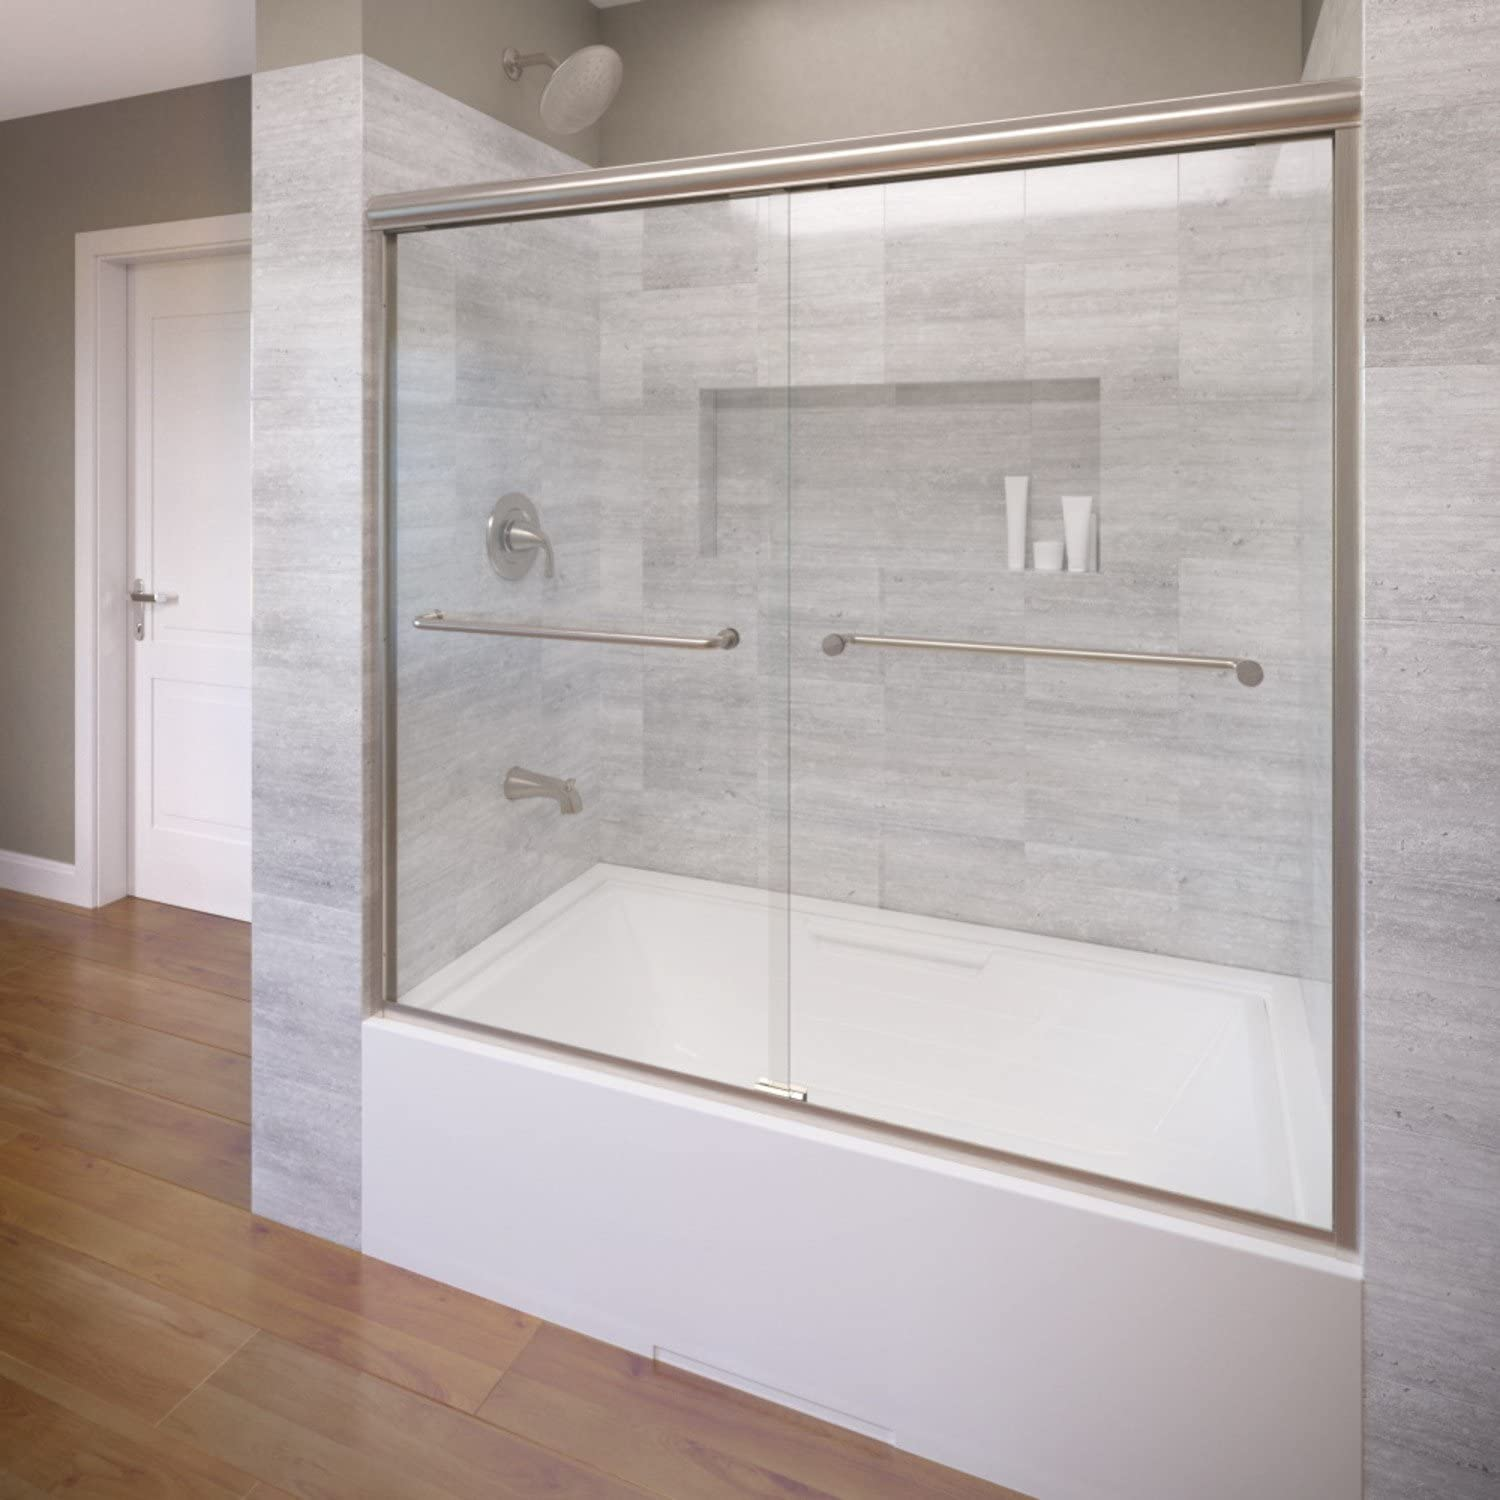 Basco Infinity Frameless Sliding Tub Door, Fits 56- 58.5 inch opening, Clear Glass, Brushed Nickel Finish